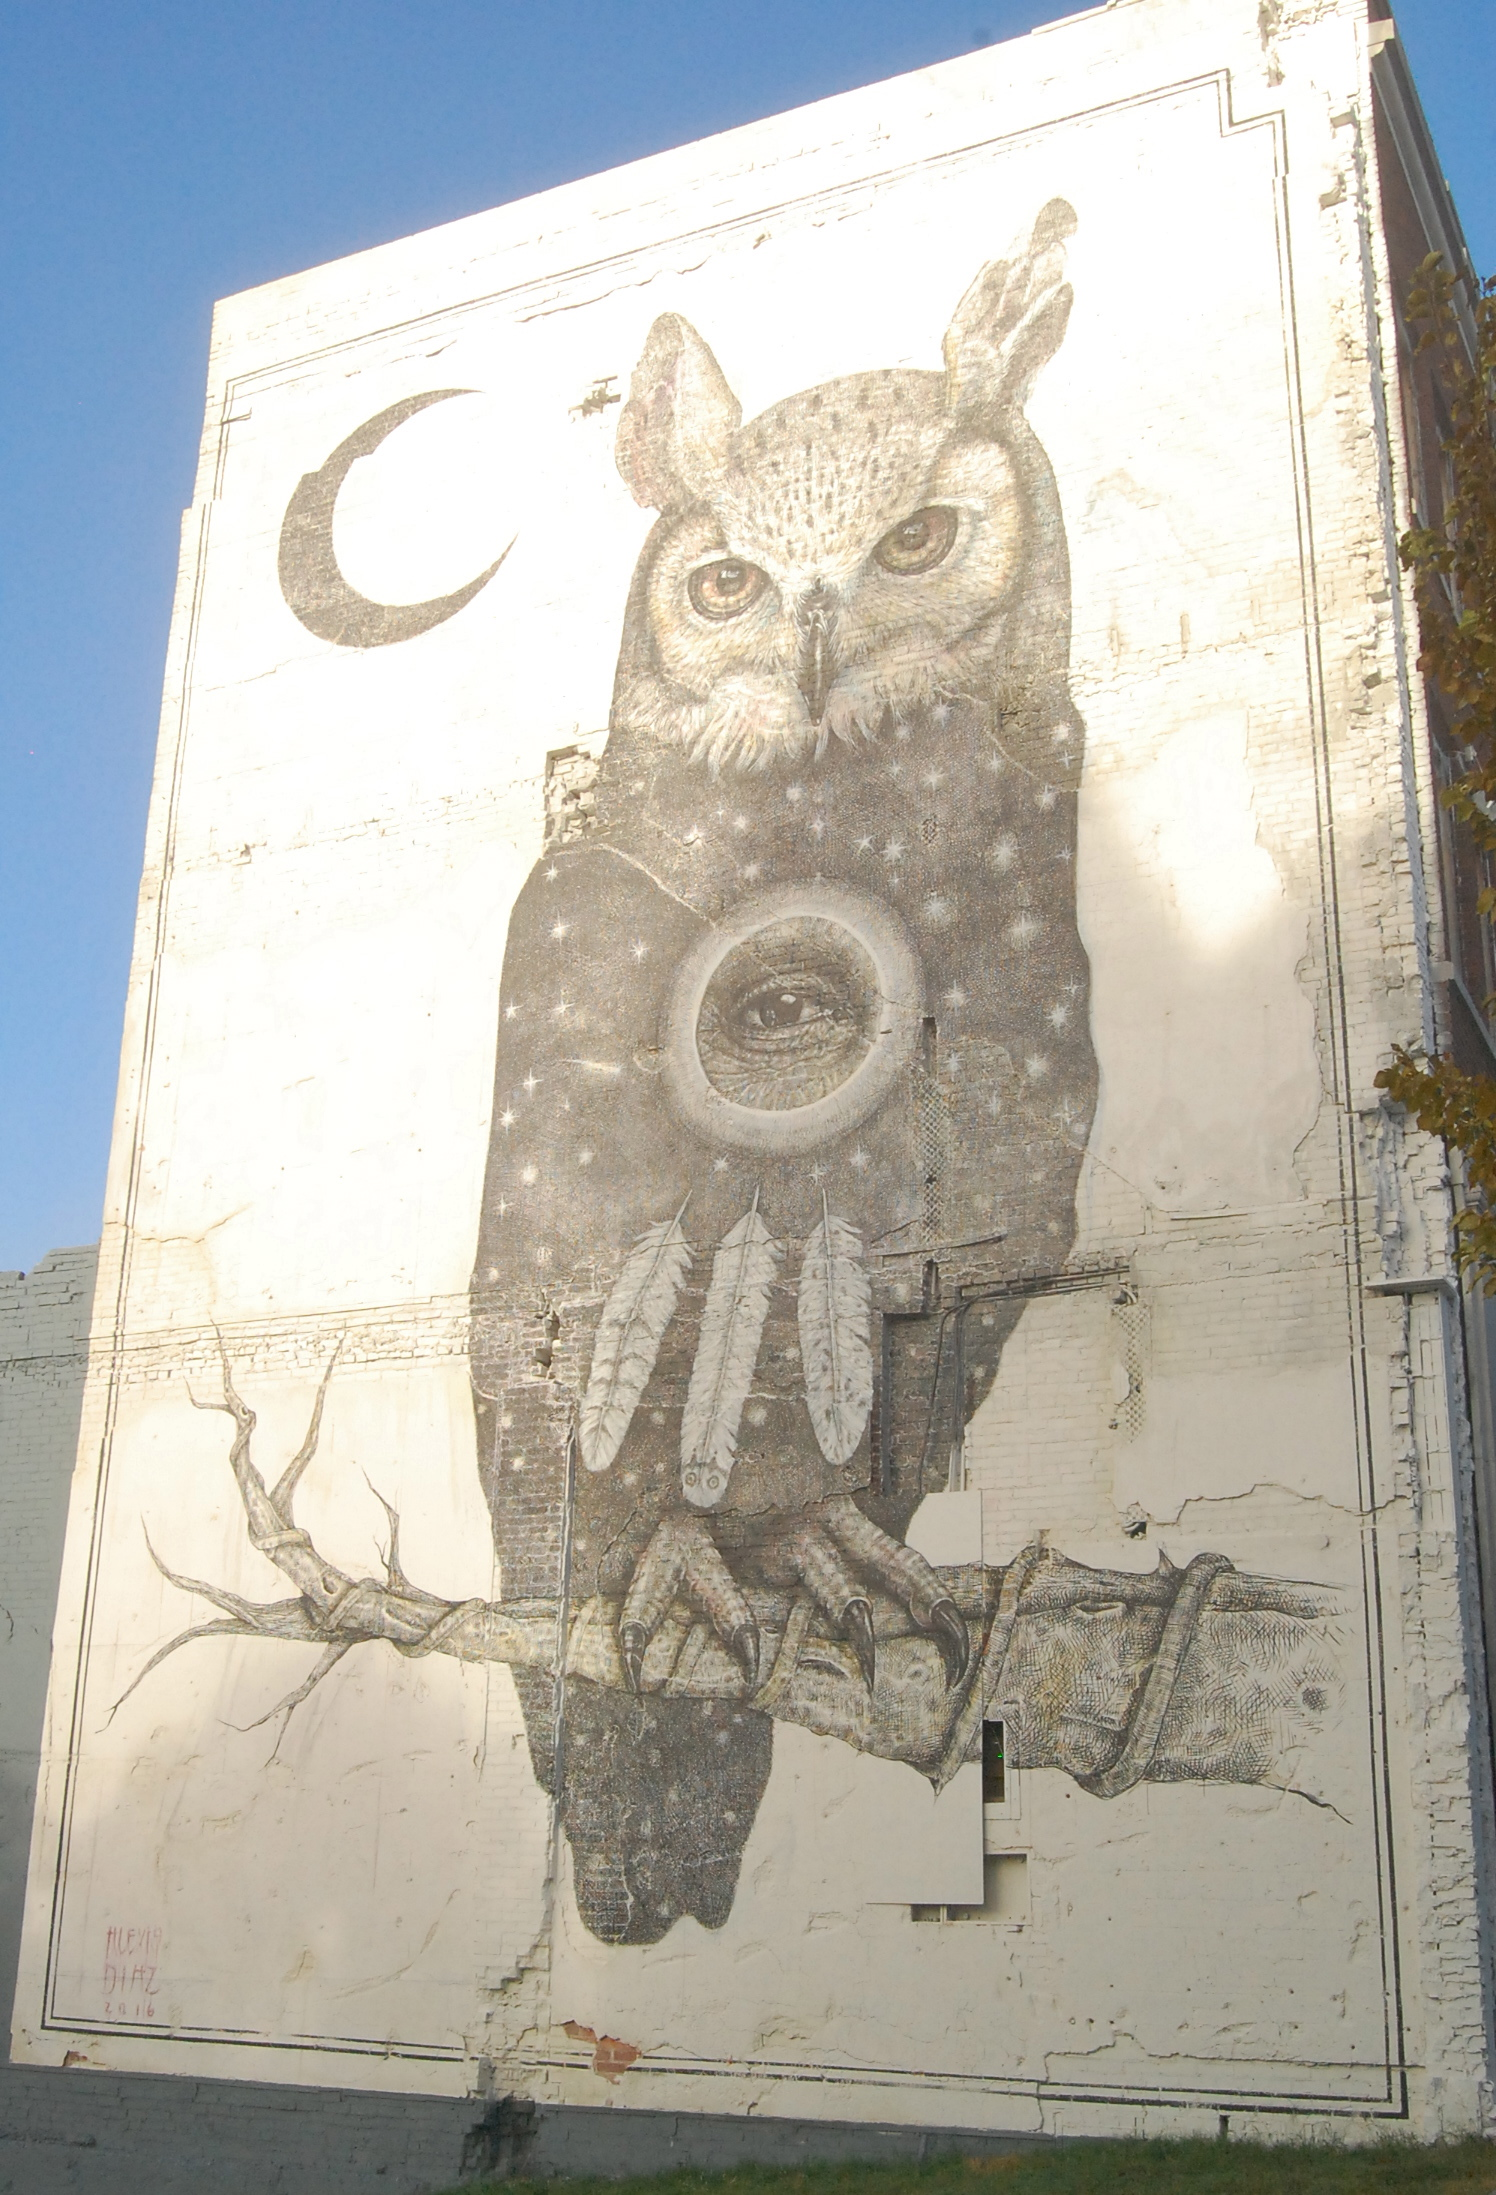 The Unexpected mural in Fayetteville